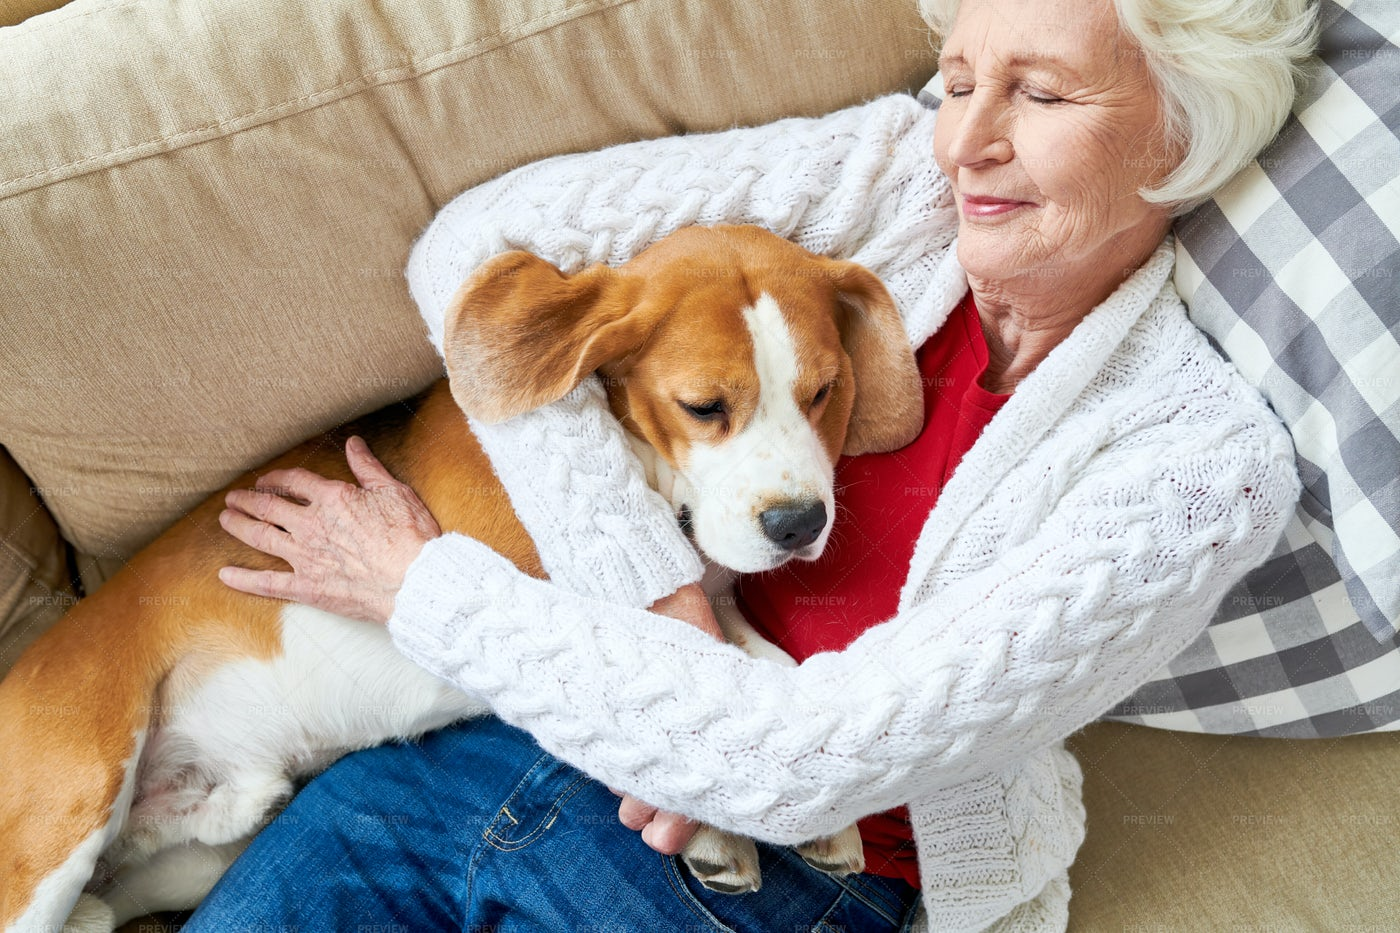 Pleased Owner Sleeping With Dog: Stock Photos